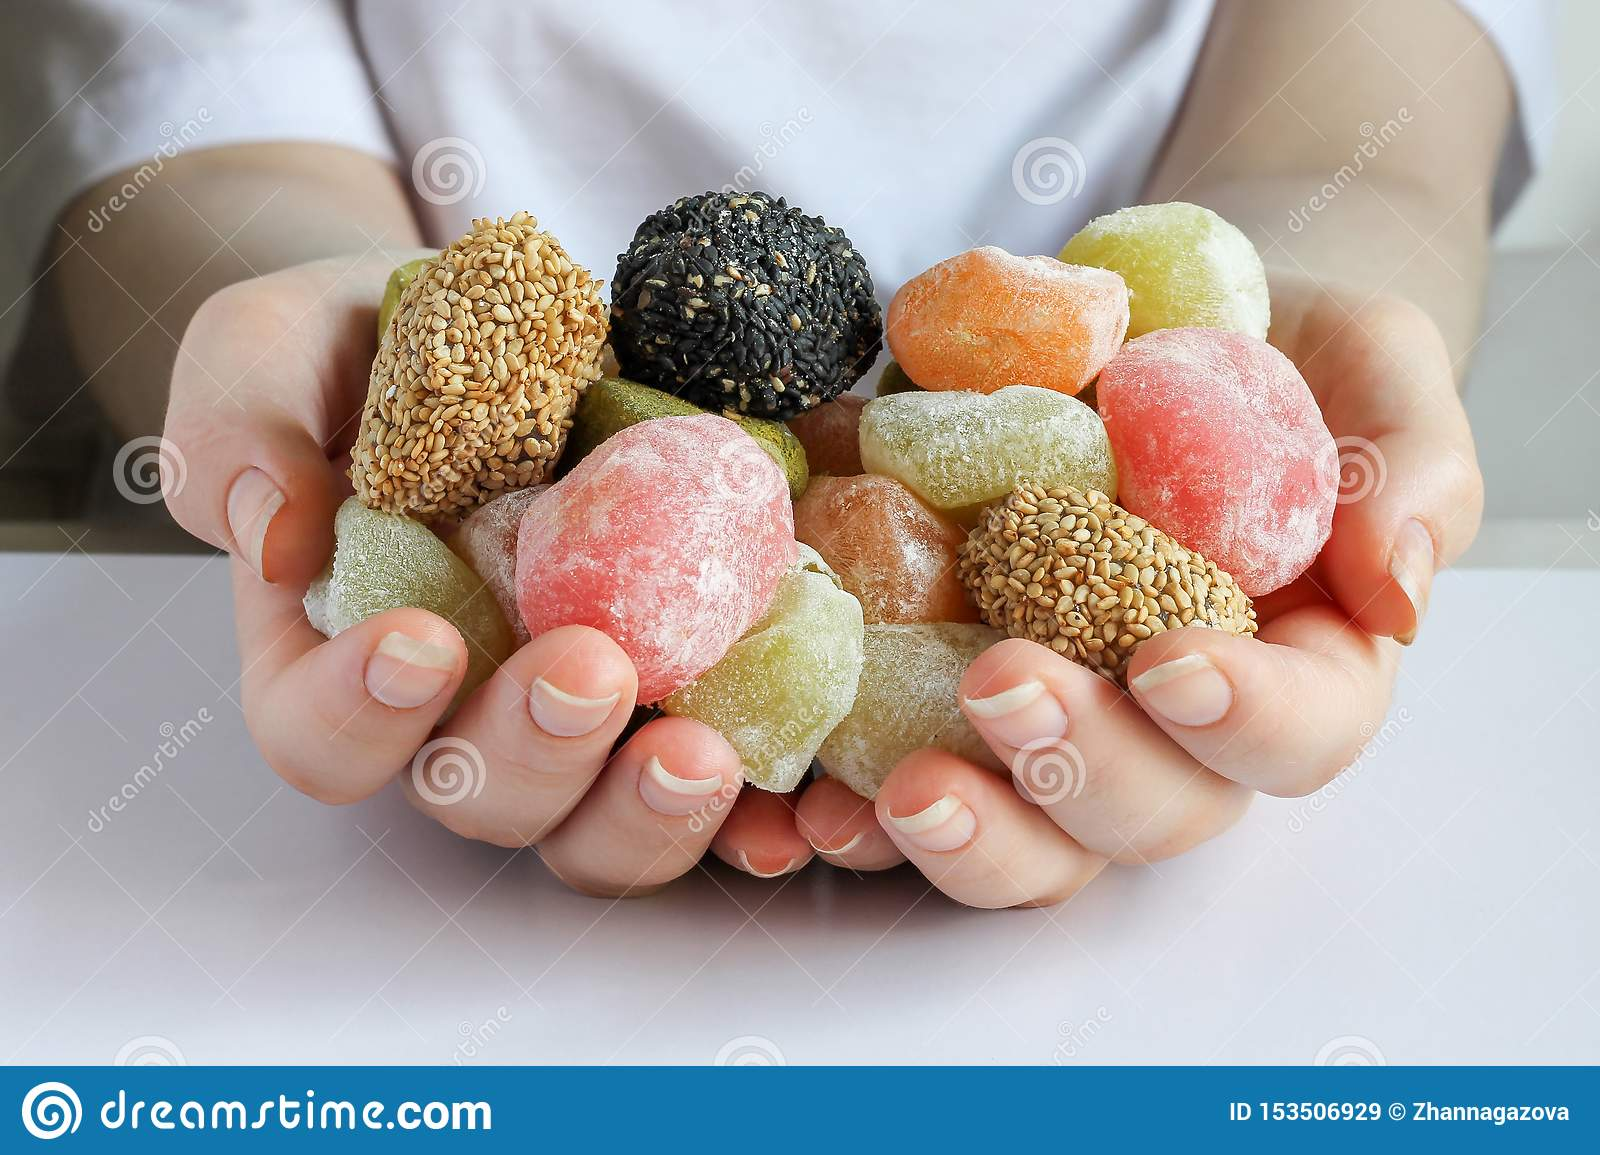 Many soft multi-colored candies in two hands